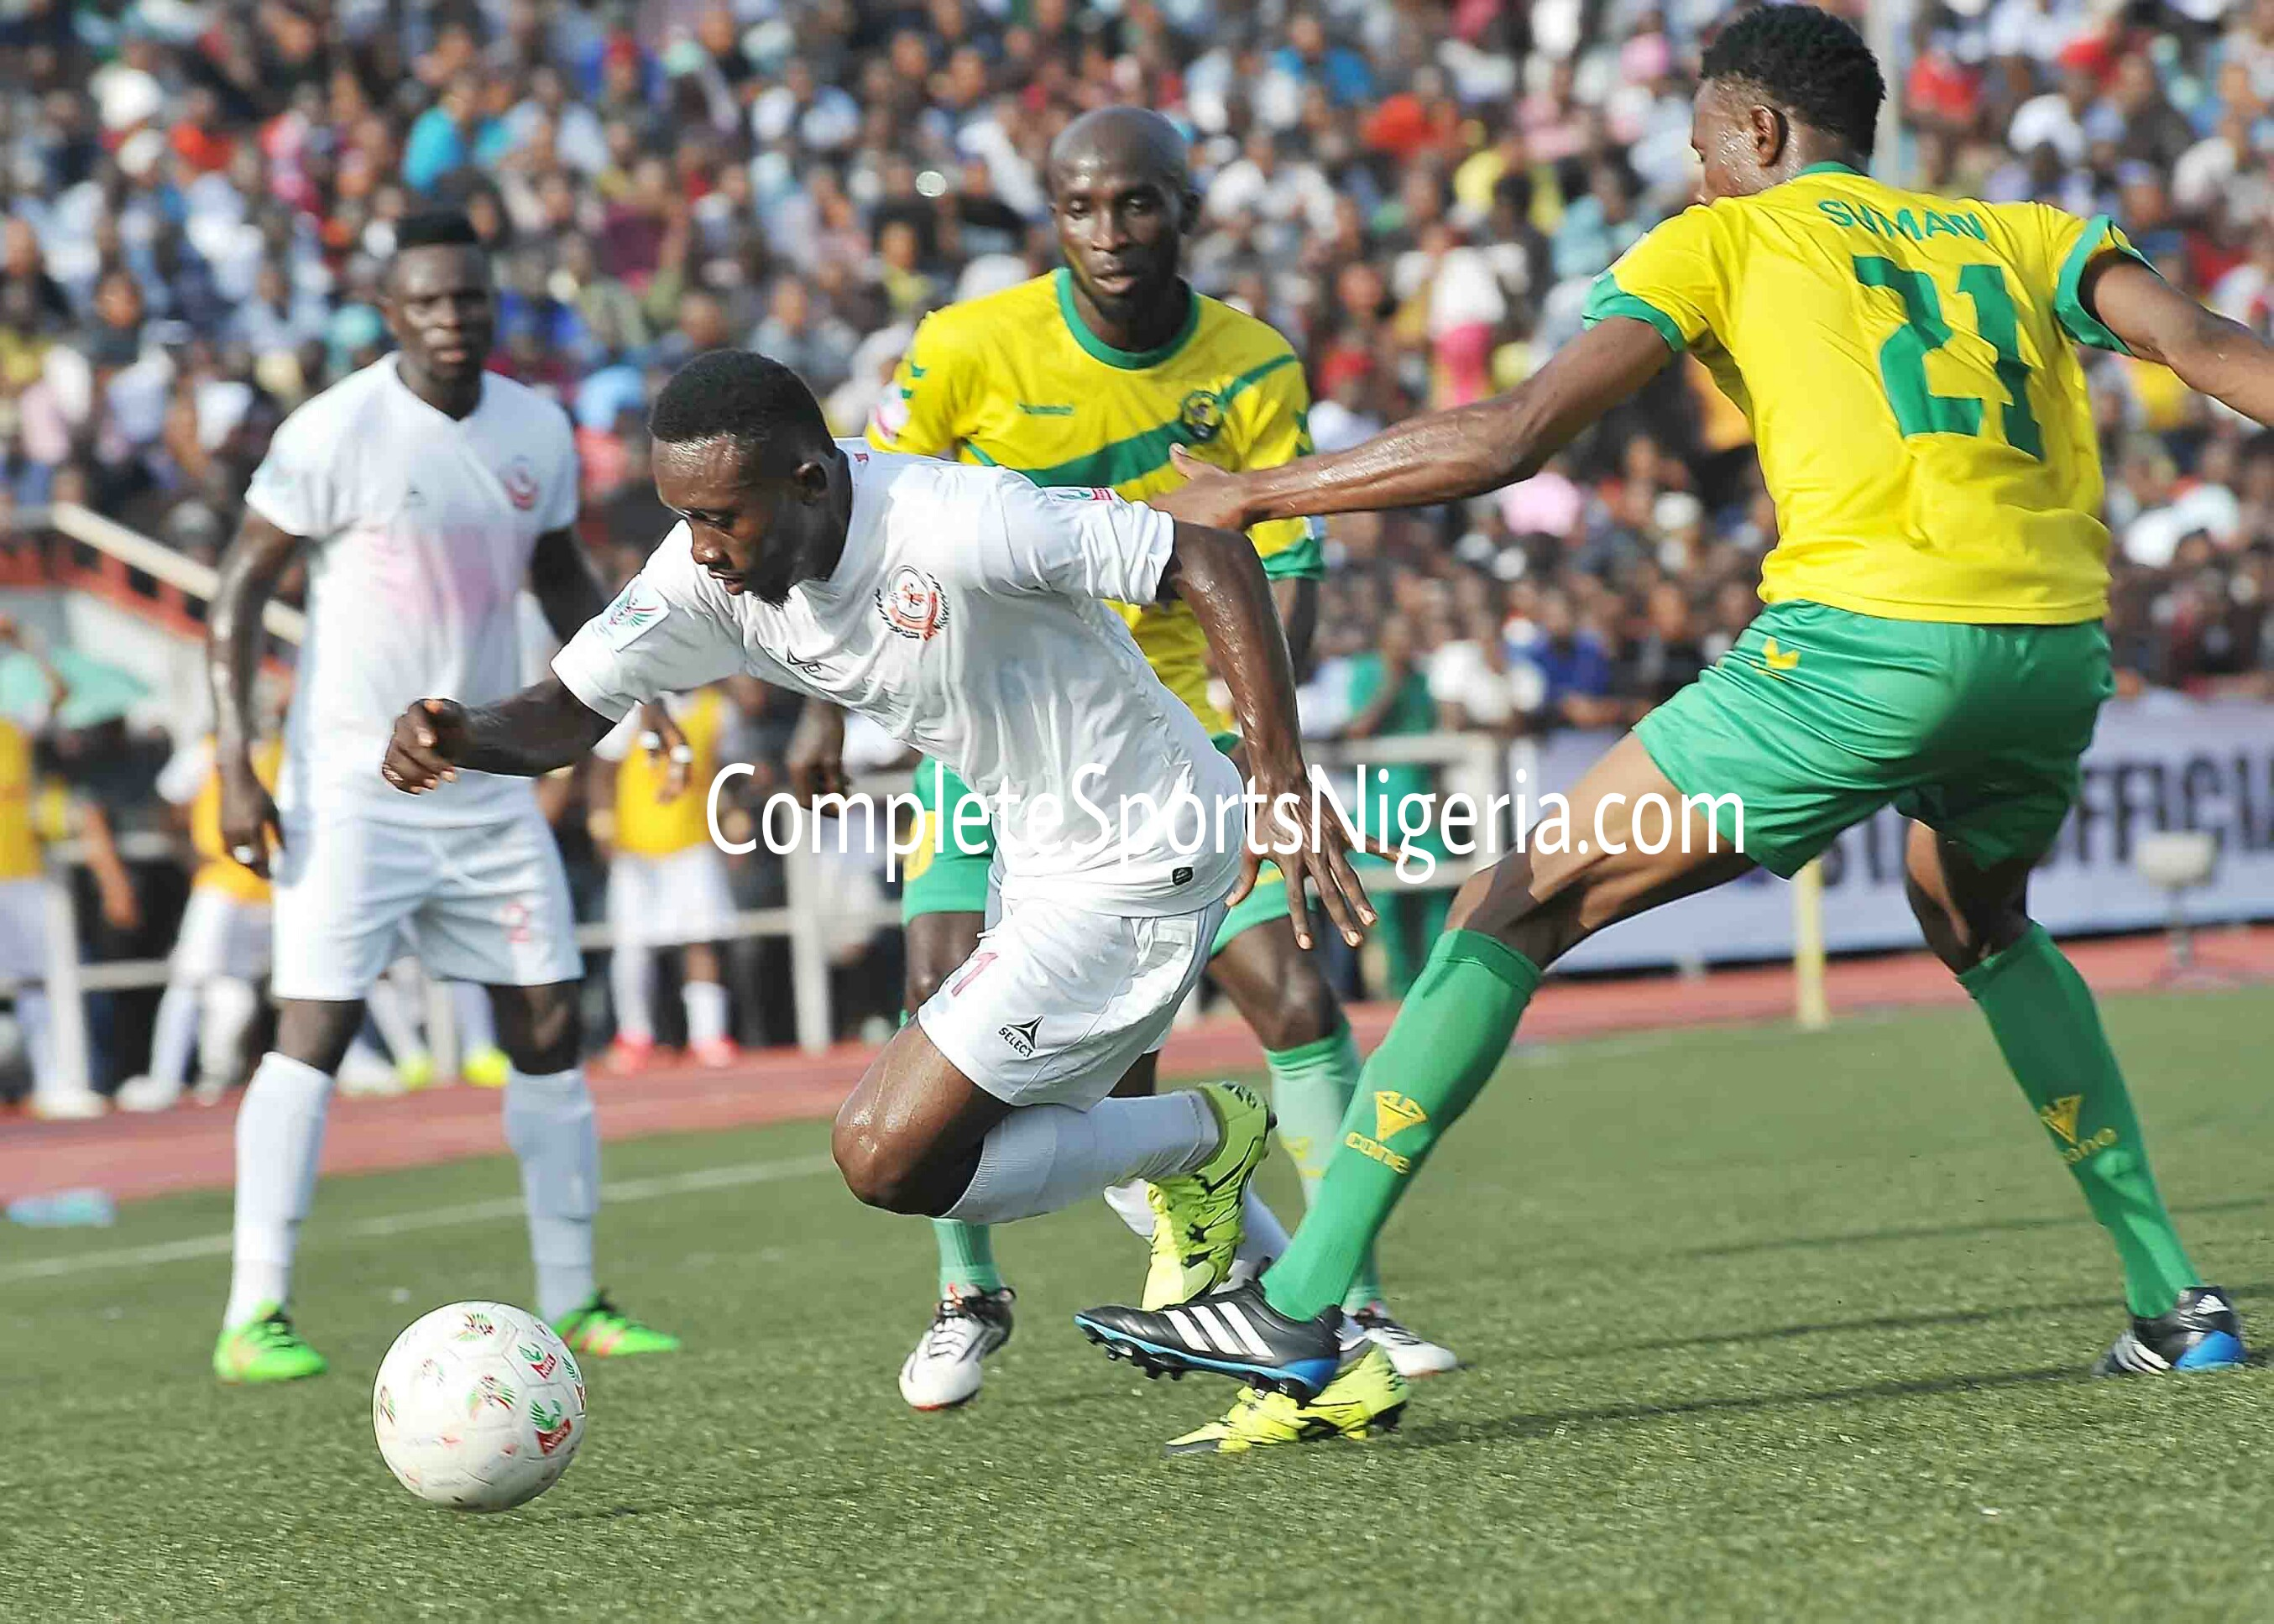 NPFL SUPER 4 Hosting Pleases Enugu State Governor